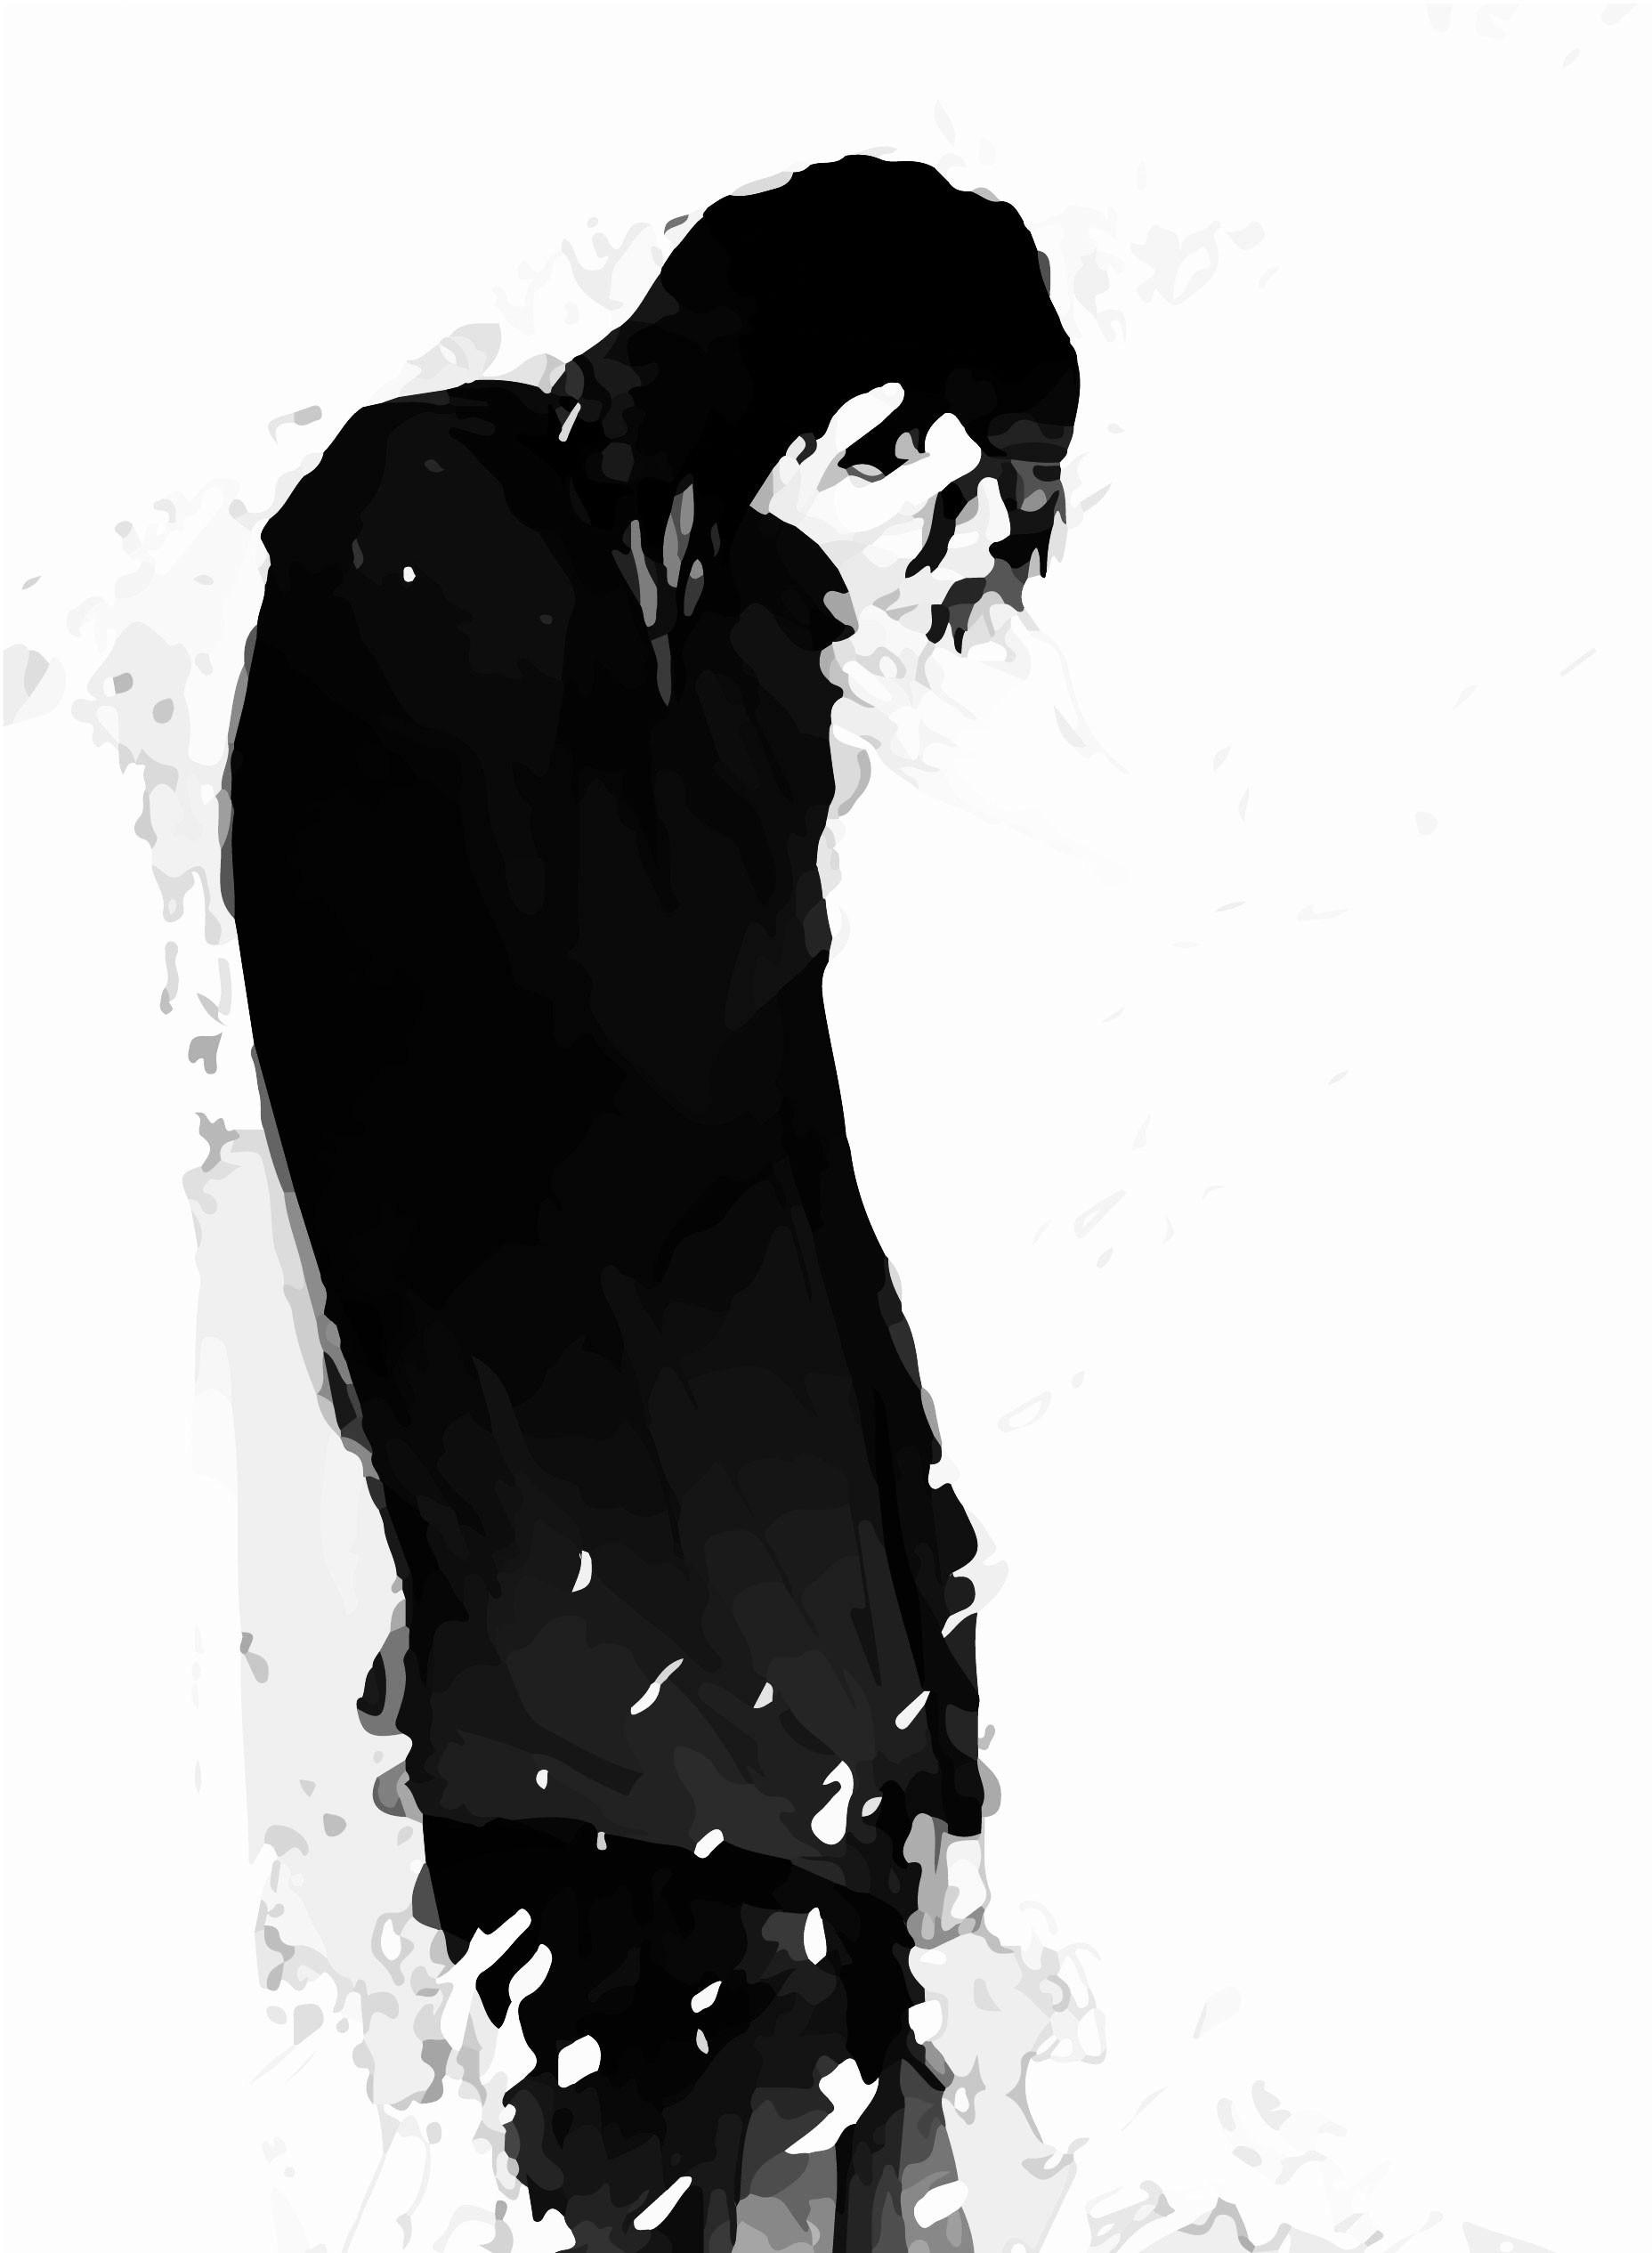 Anime Sad Black And White Wallpapers Wallpaper Cave,Tiny Houses Wisconsin For Sale